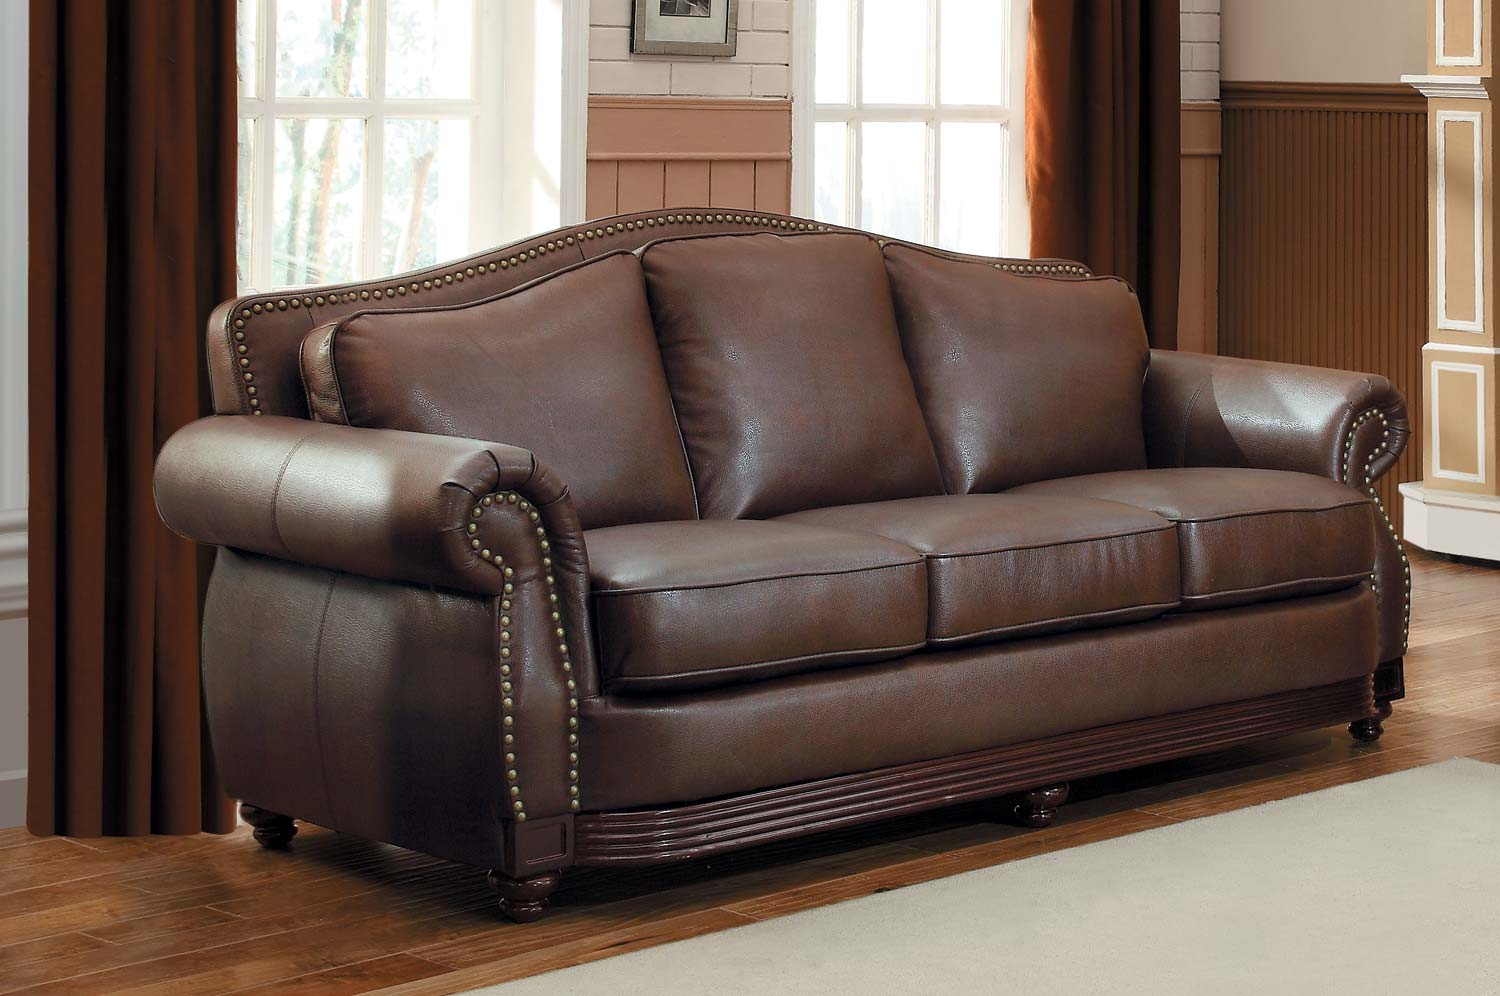 Homelegance midwood bonded leather sofa collection dark for Furniture leather sofa